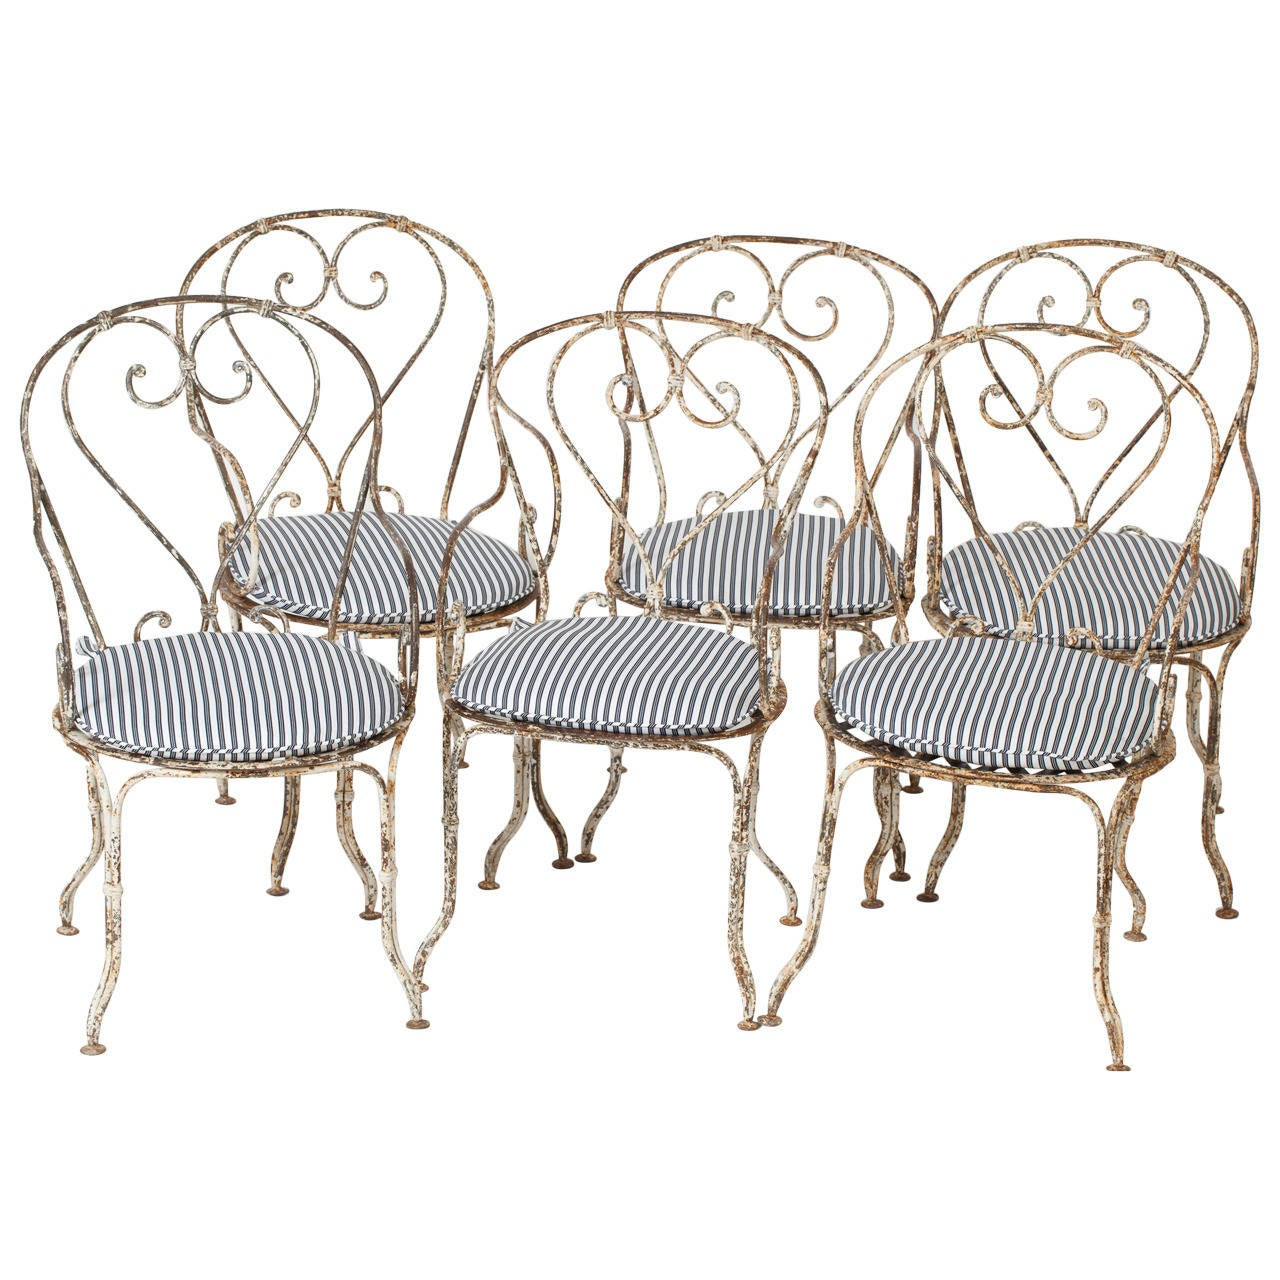 A set of six French Antique Wrought Iron garden chairs circa 1900 at 1stdibs